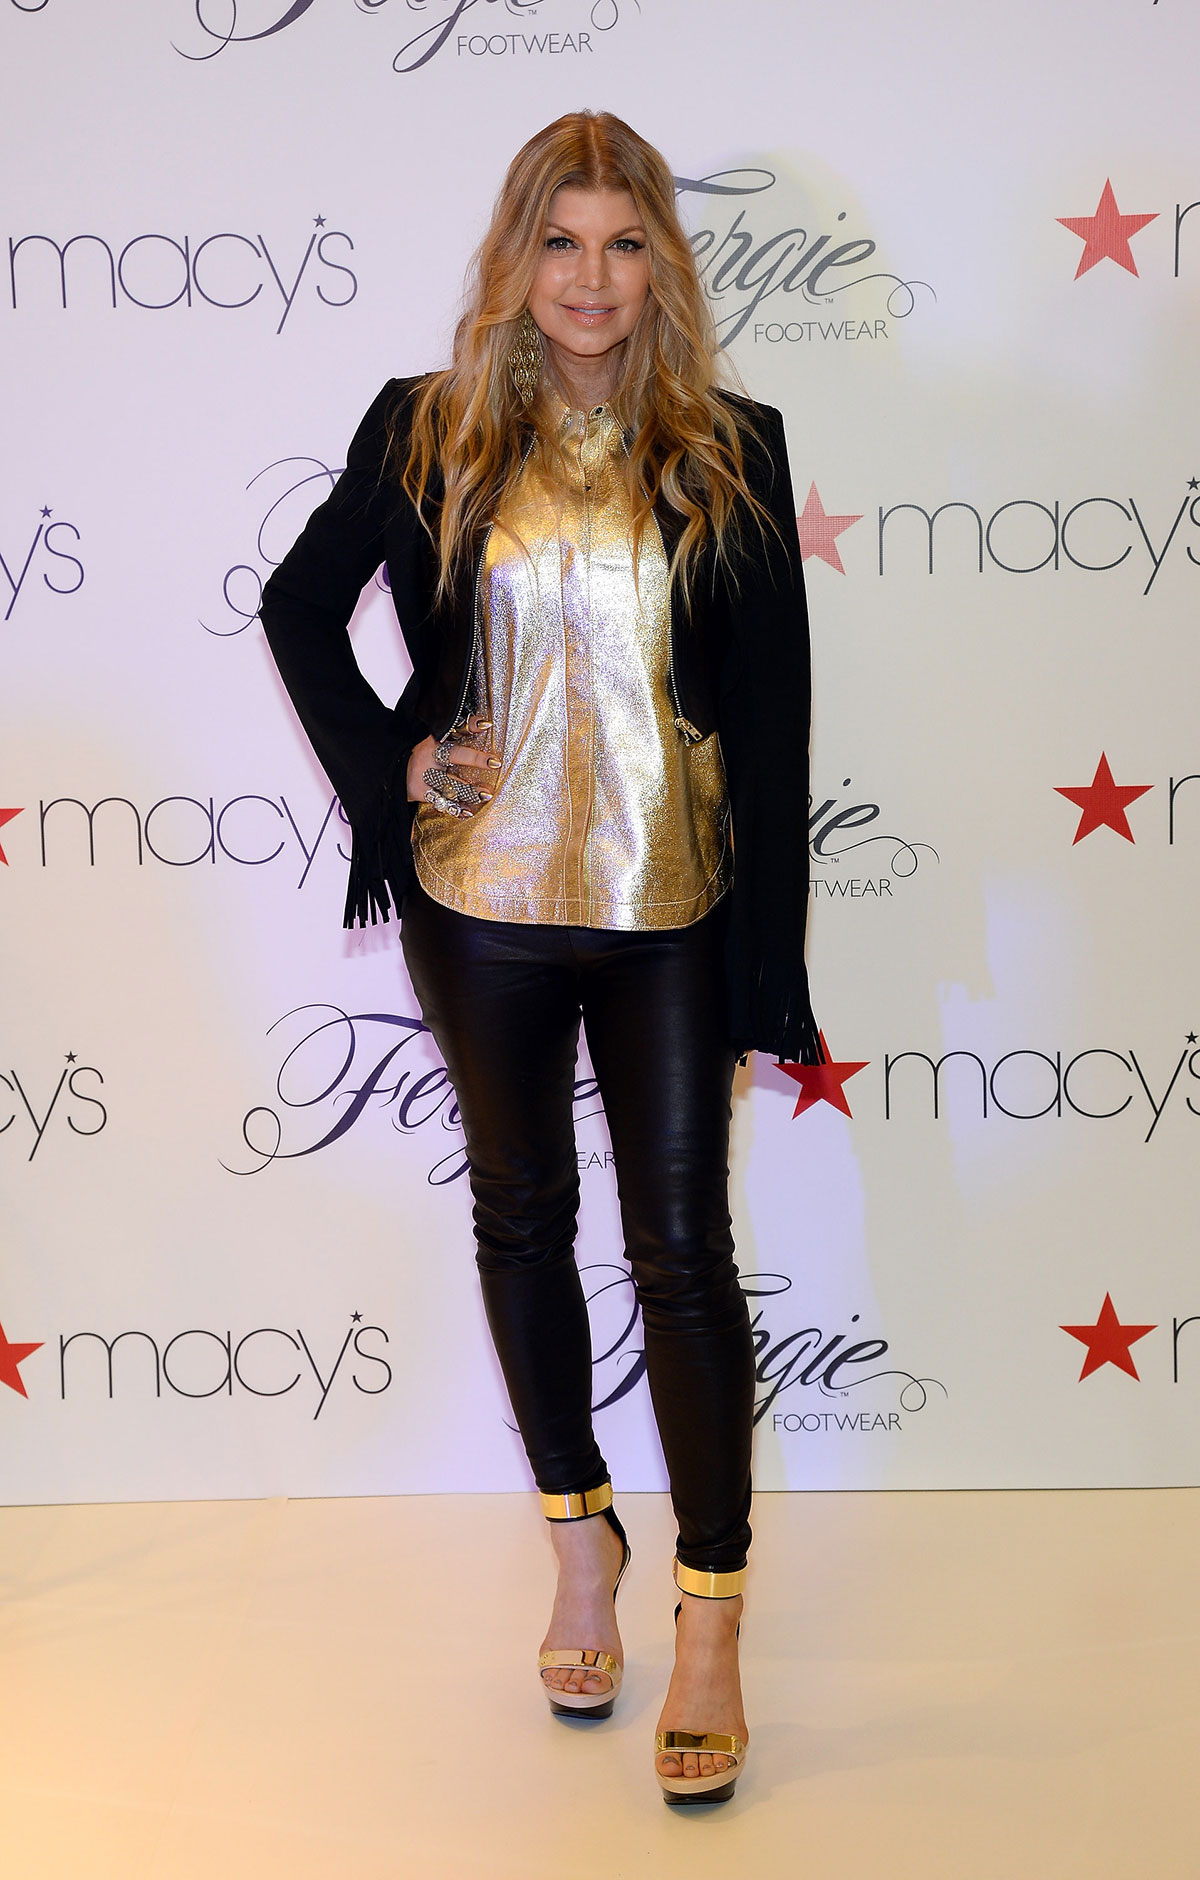 Fergie Duhamel at Macy's at the Fashion Show mall